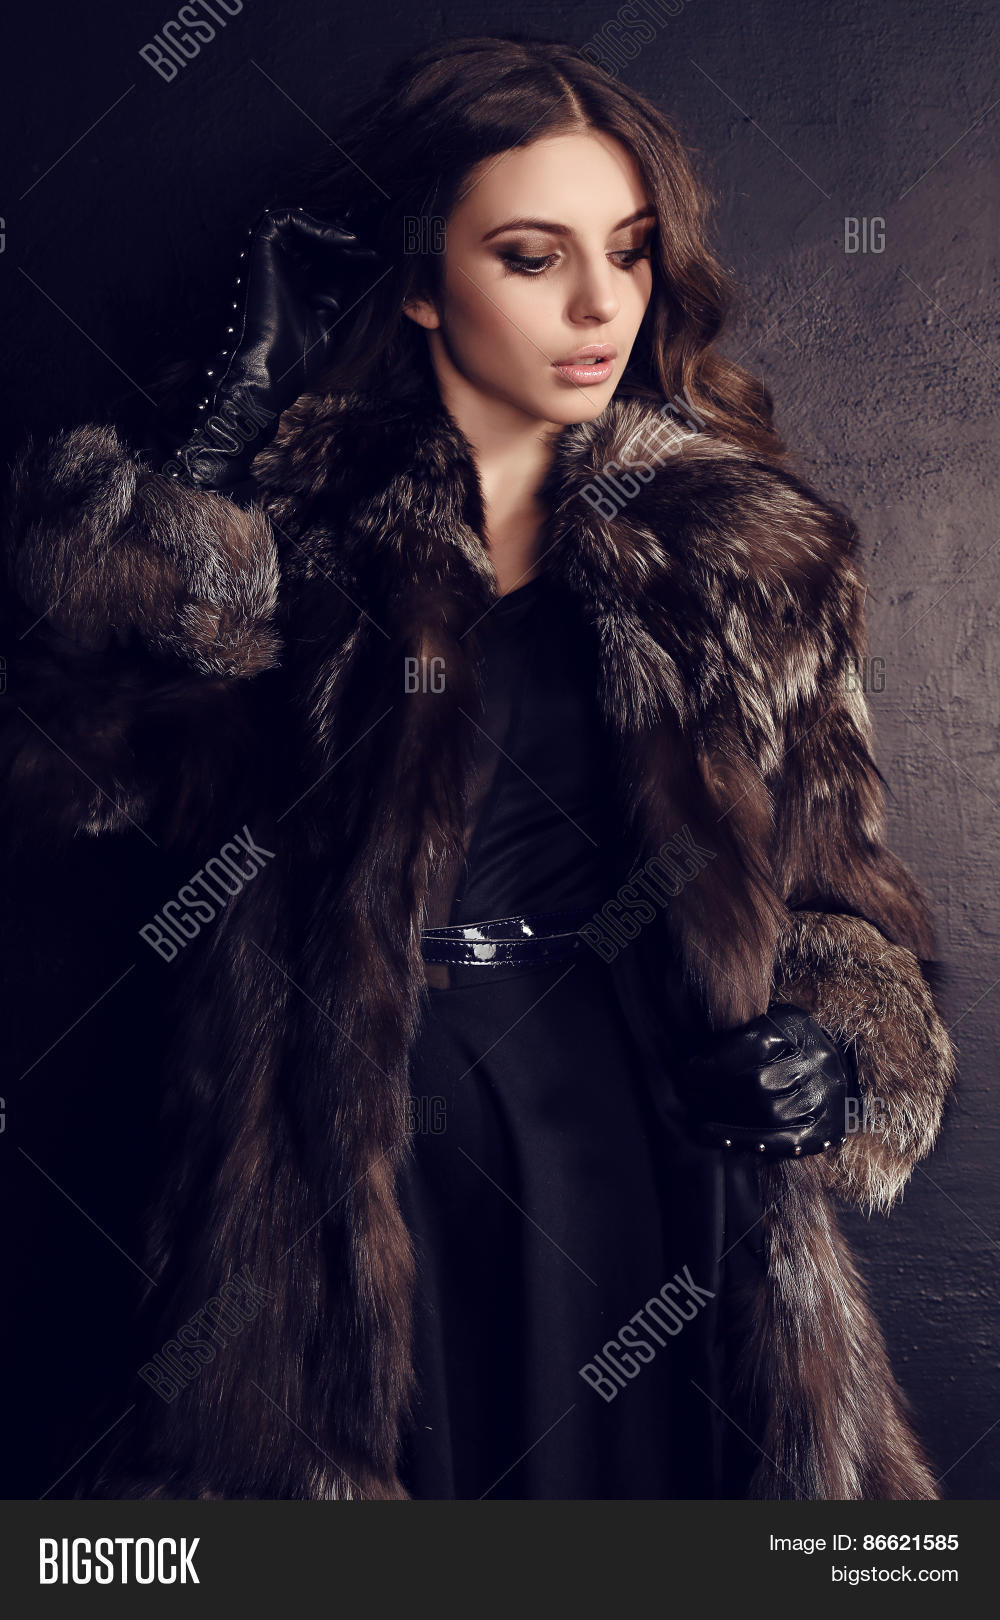 Black leather gloves with fur - Brunette Woman In Luxurious Fur Coat And Black Leather Gloves